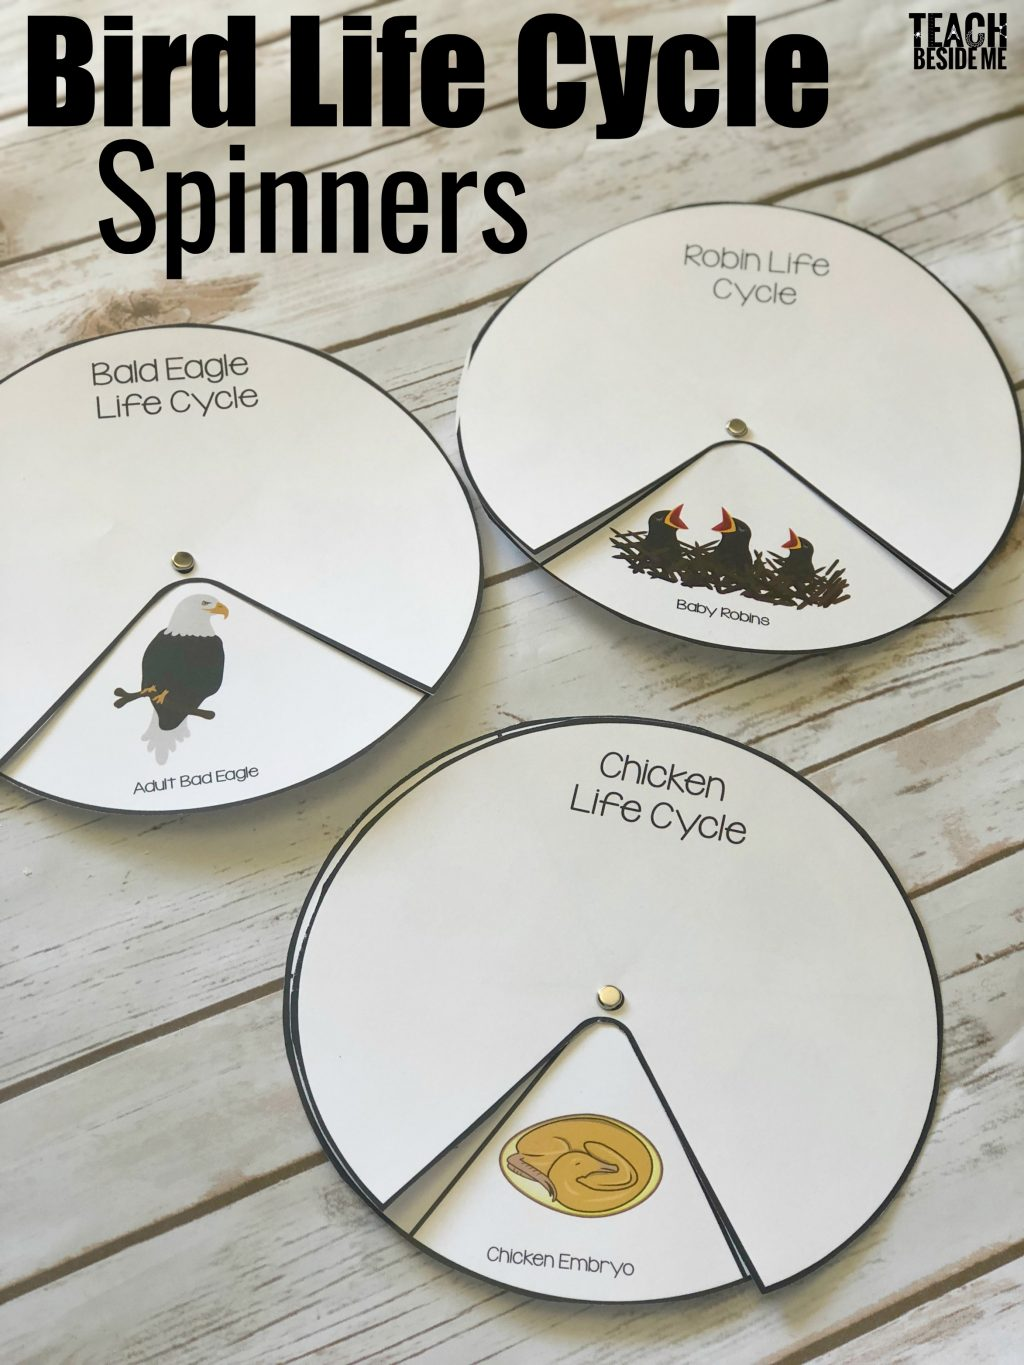 Bird Life Cycle Spinners Chicken Bald Eagle Amp Robin